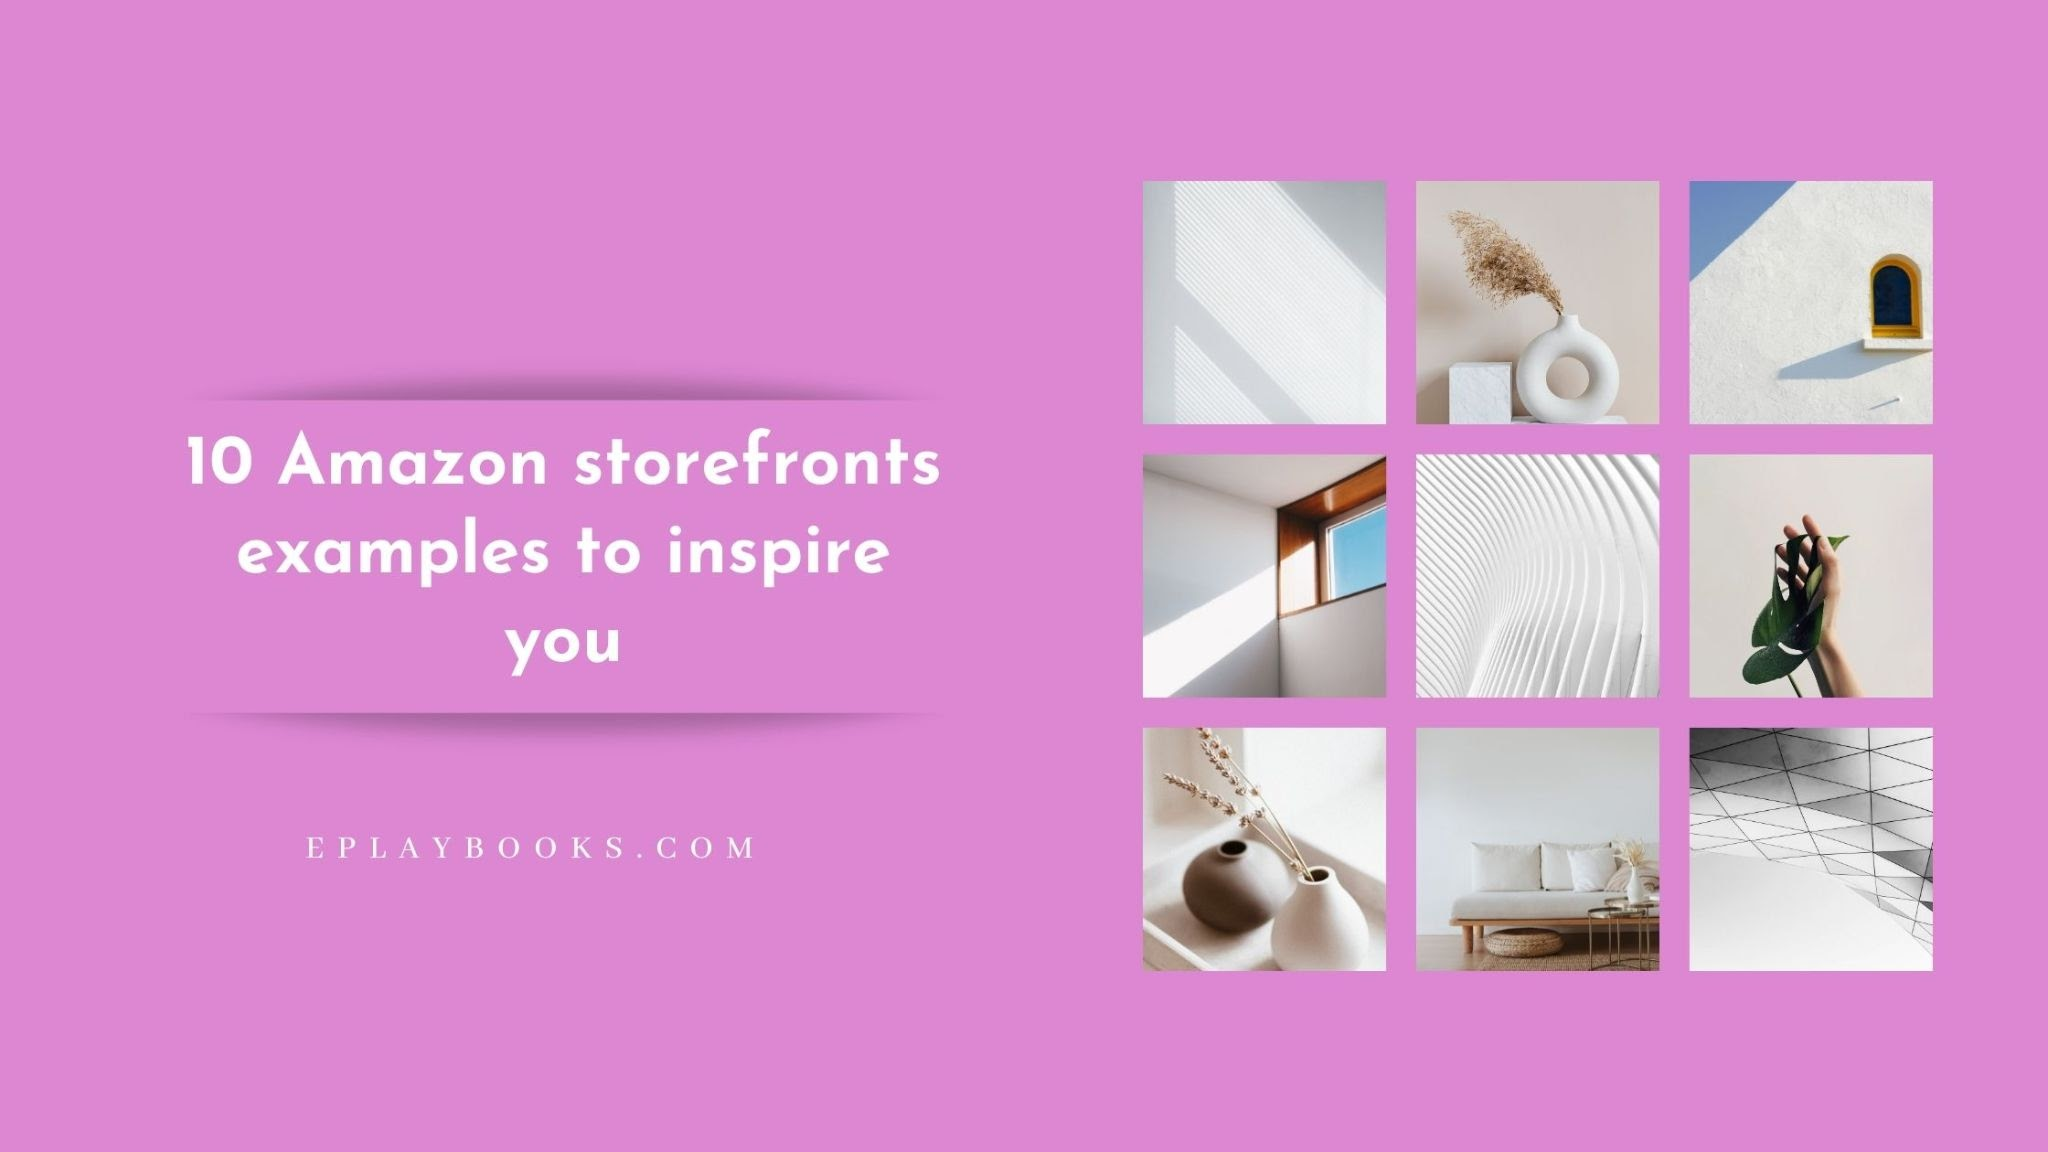 10 Amazon storefronts examples to inspire you